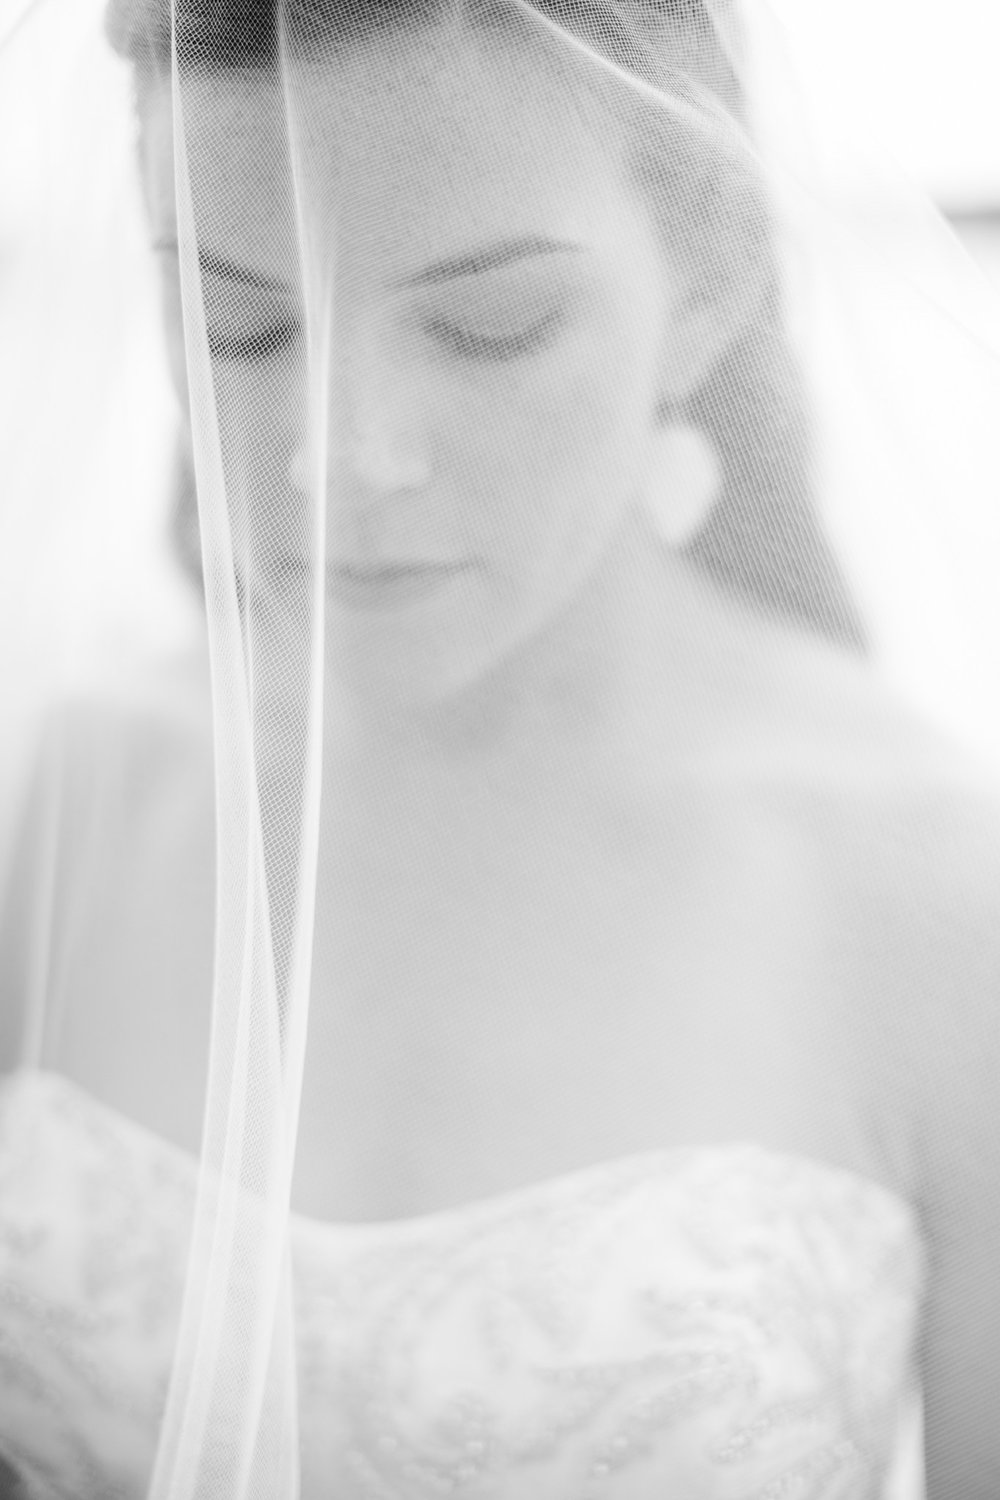 hyatt_regency_boston_wedding_00030.JPG